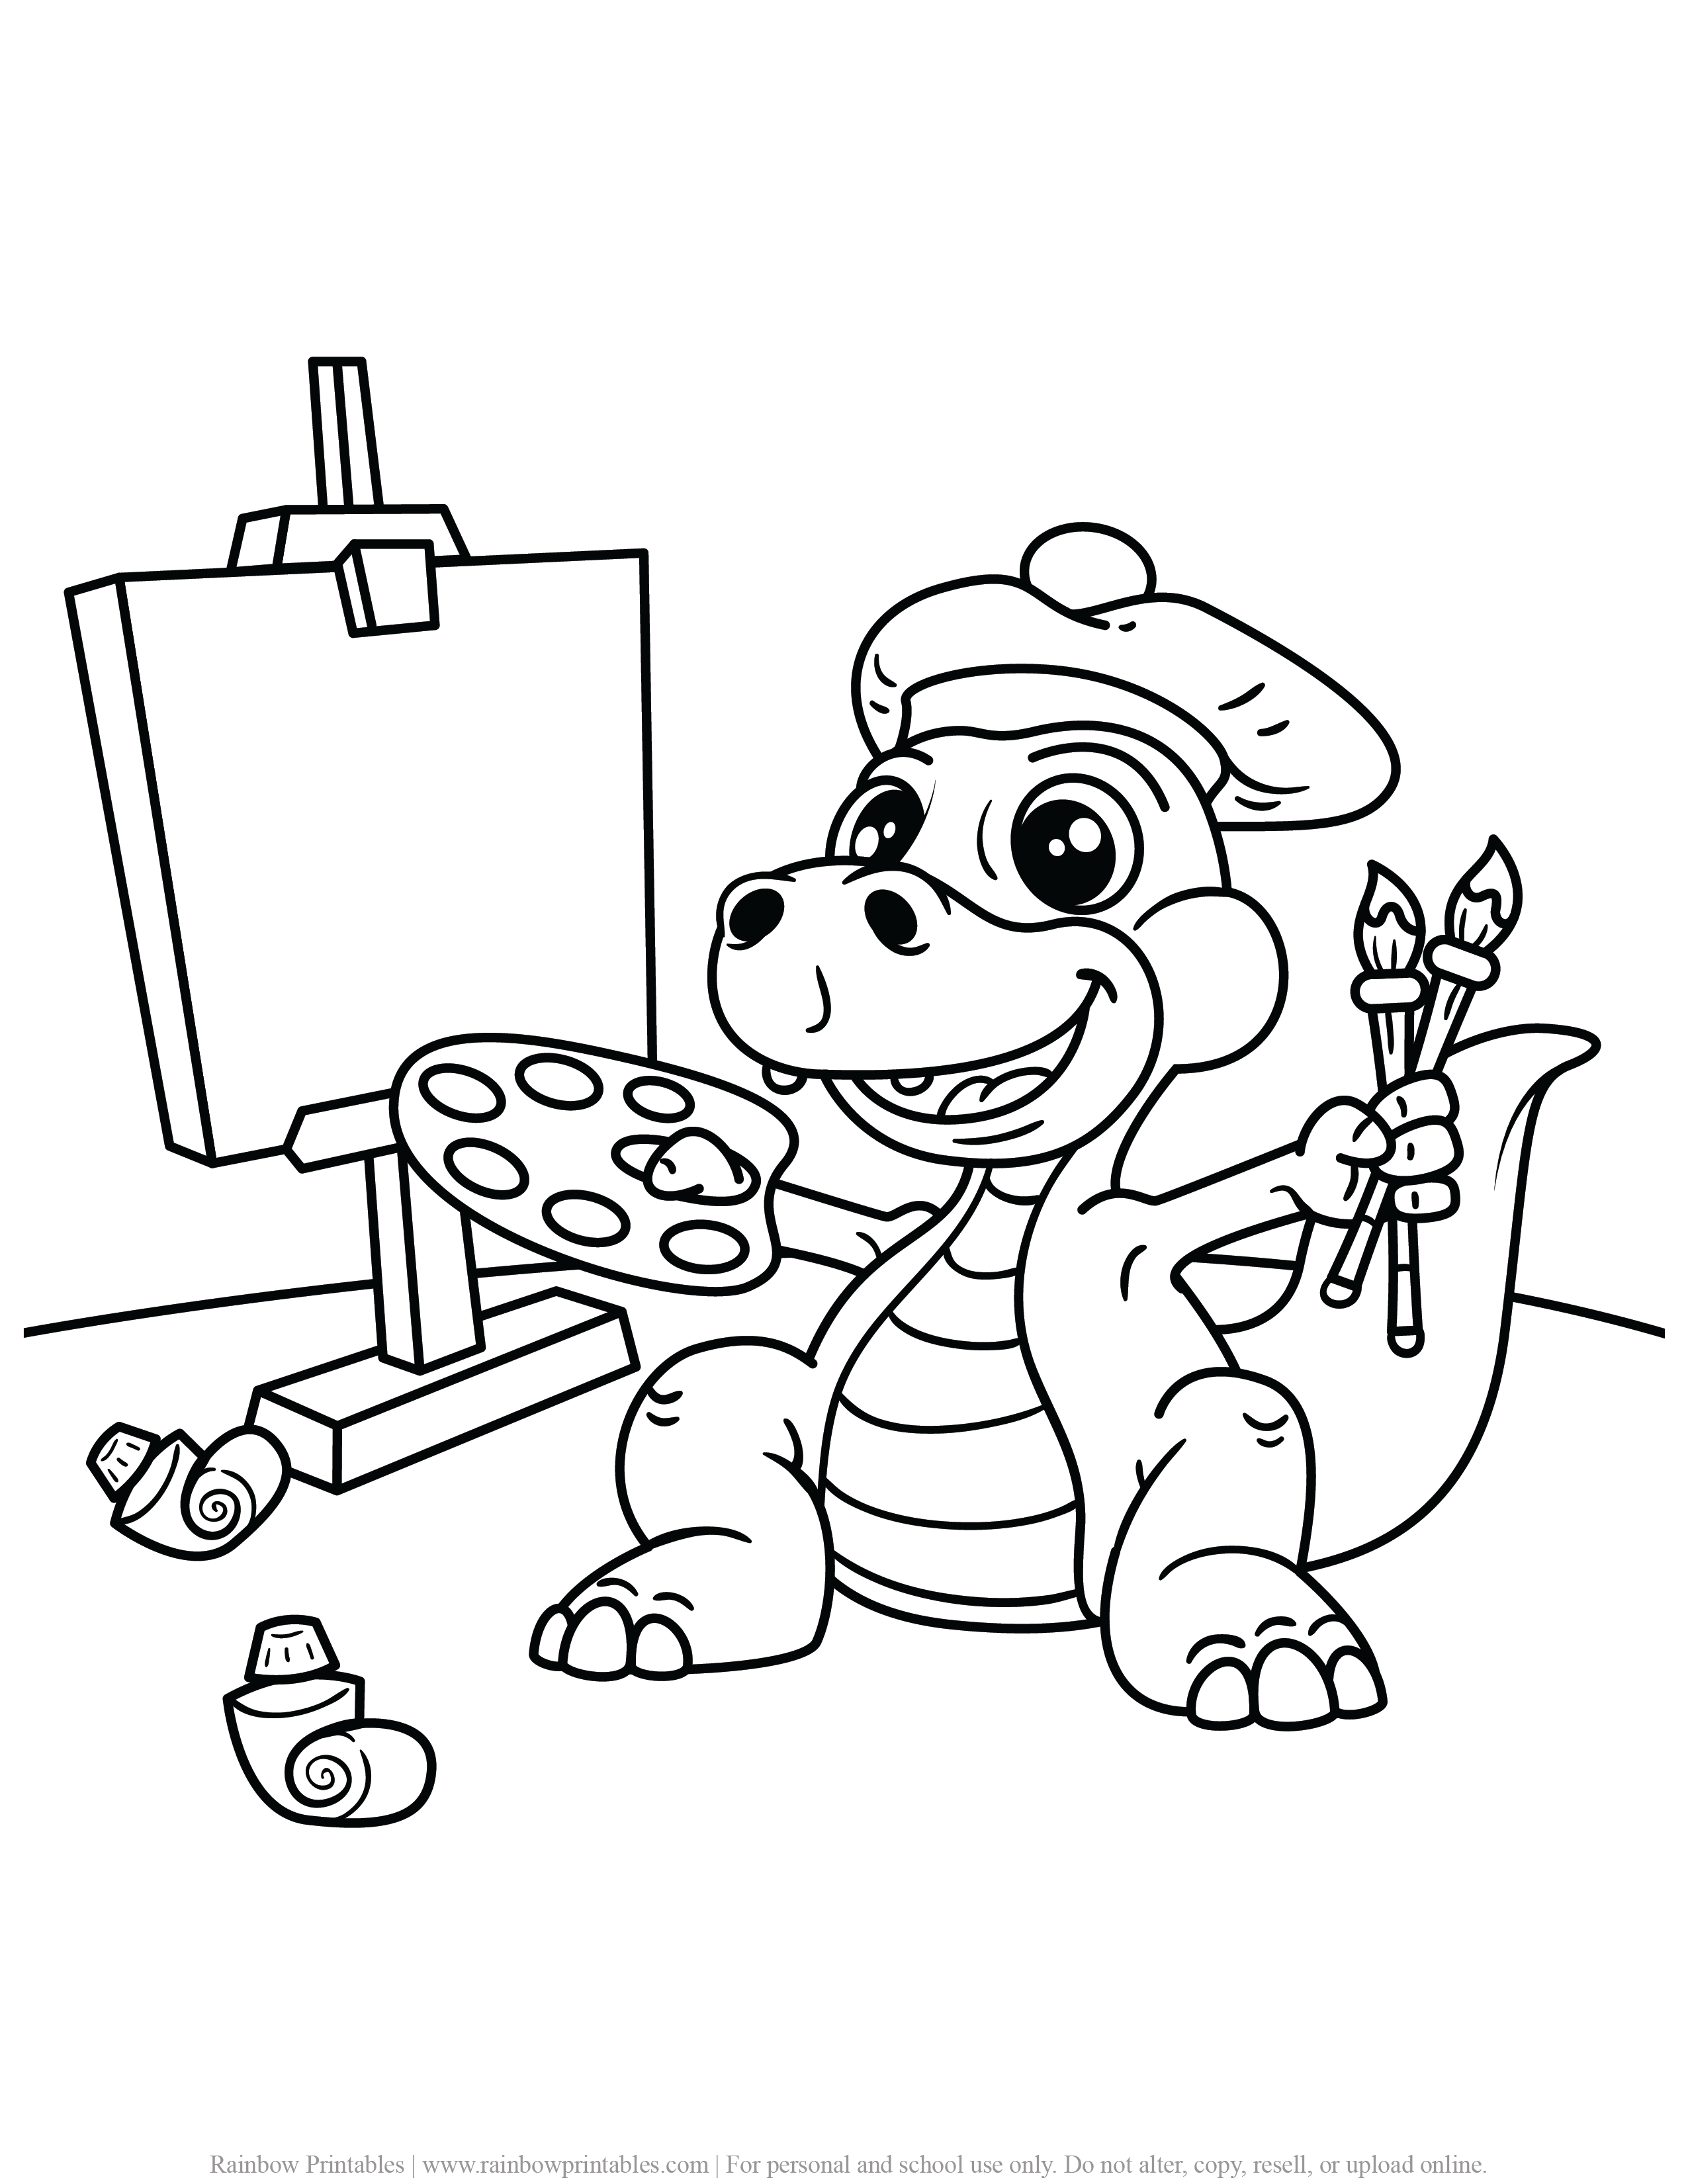 FREE DINOSAUR COLORING PAGES ACTIVITY FOR KIDS AND BOYS DINO DRAGON PRINTABLE-16